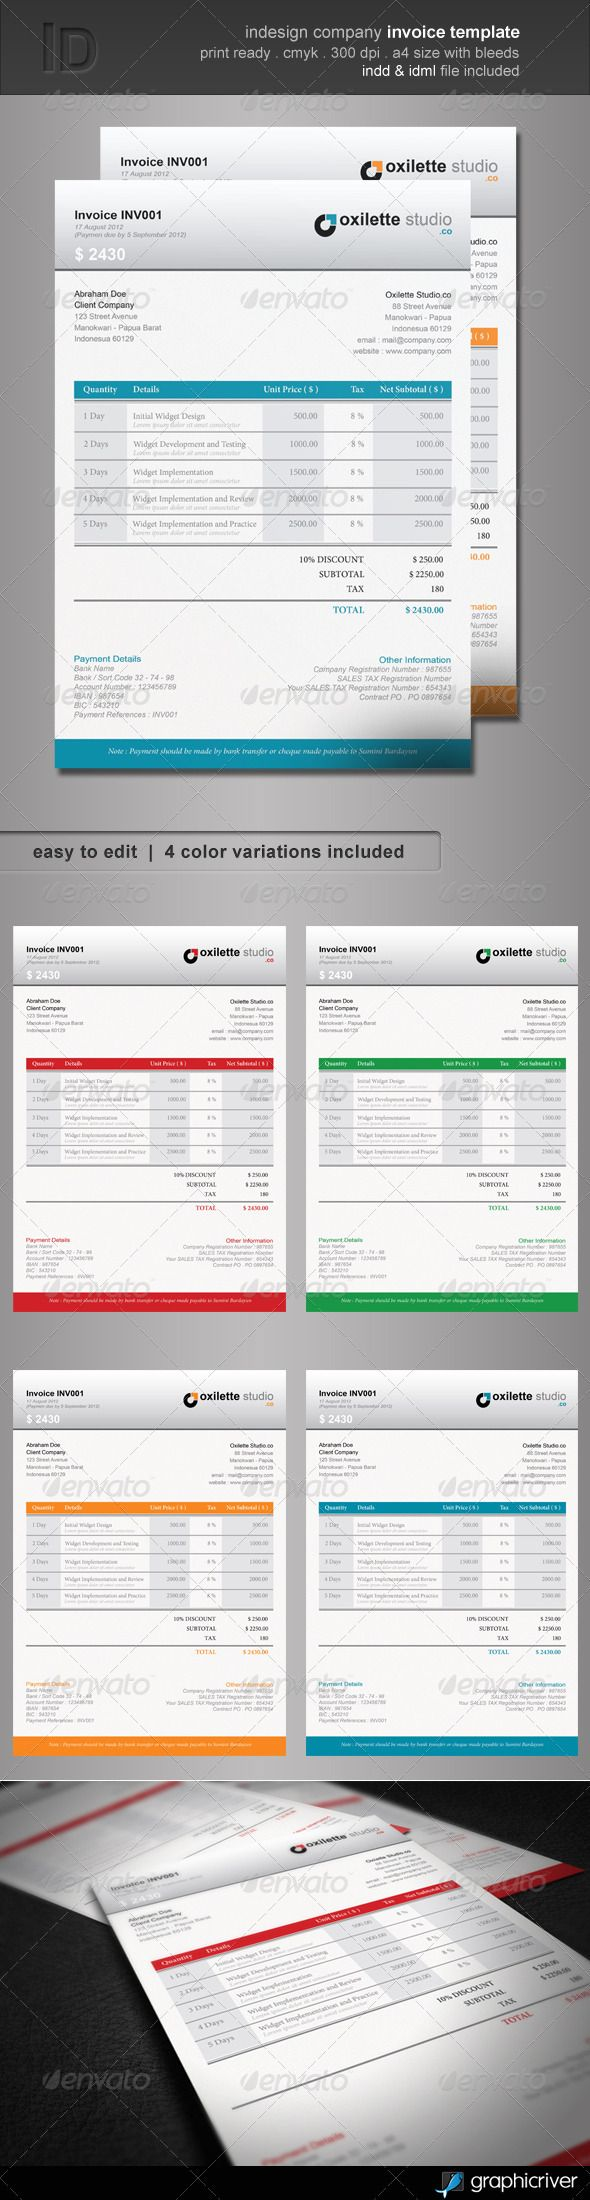 Indesign Company Invoice Template | Template, Fonts and Proposal ...